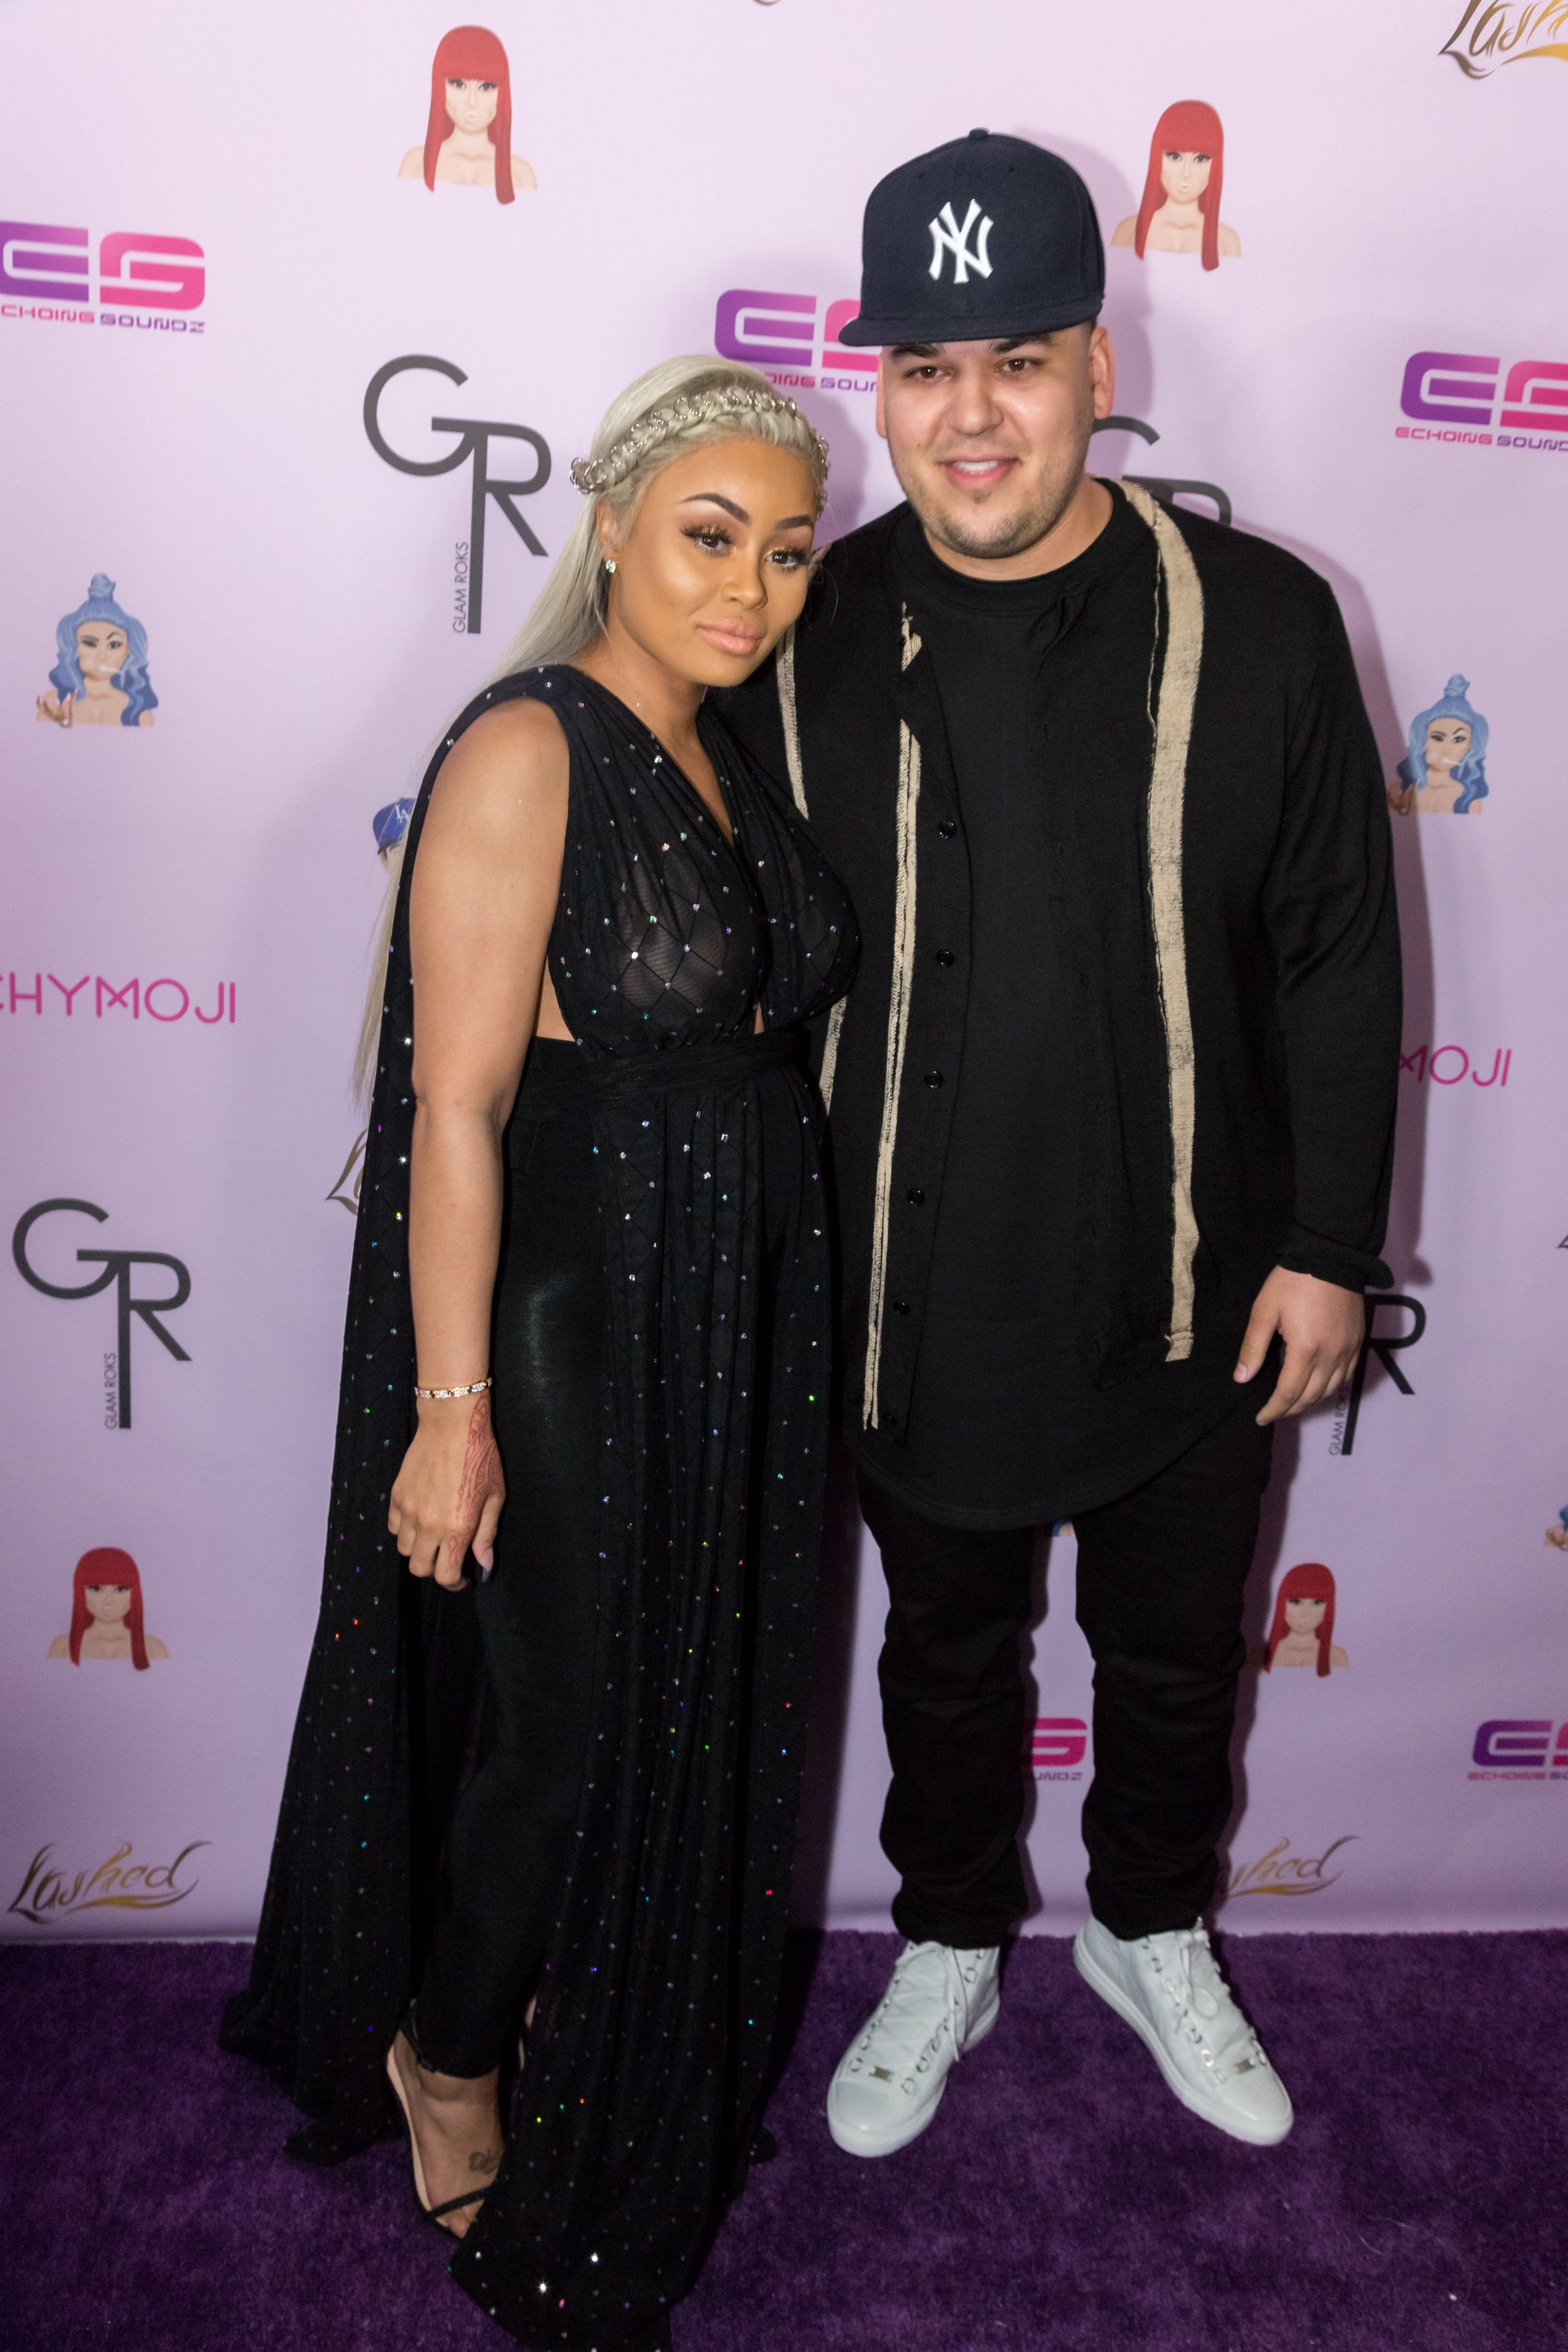 Rob Kardashian and Blac Chyna at her birthday celebration on May 10, 2016 in Hollywood. | Photo: Getty Images